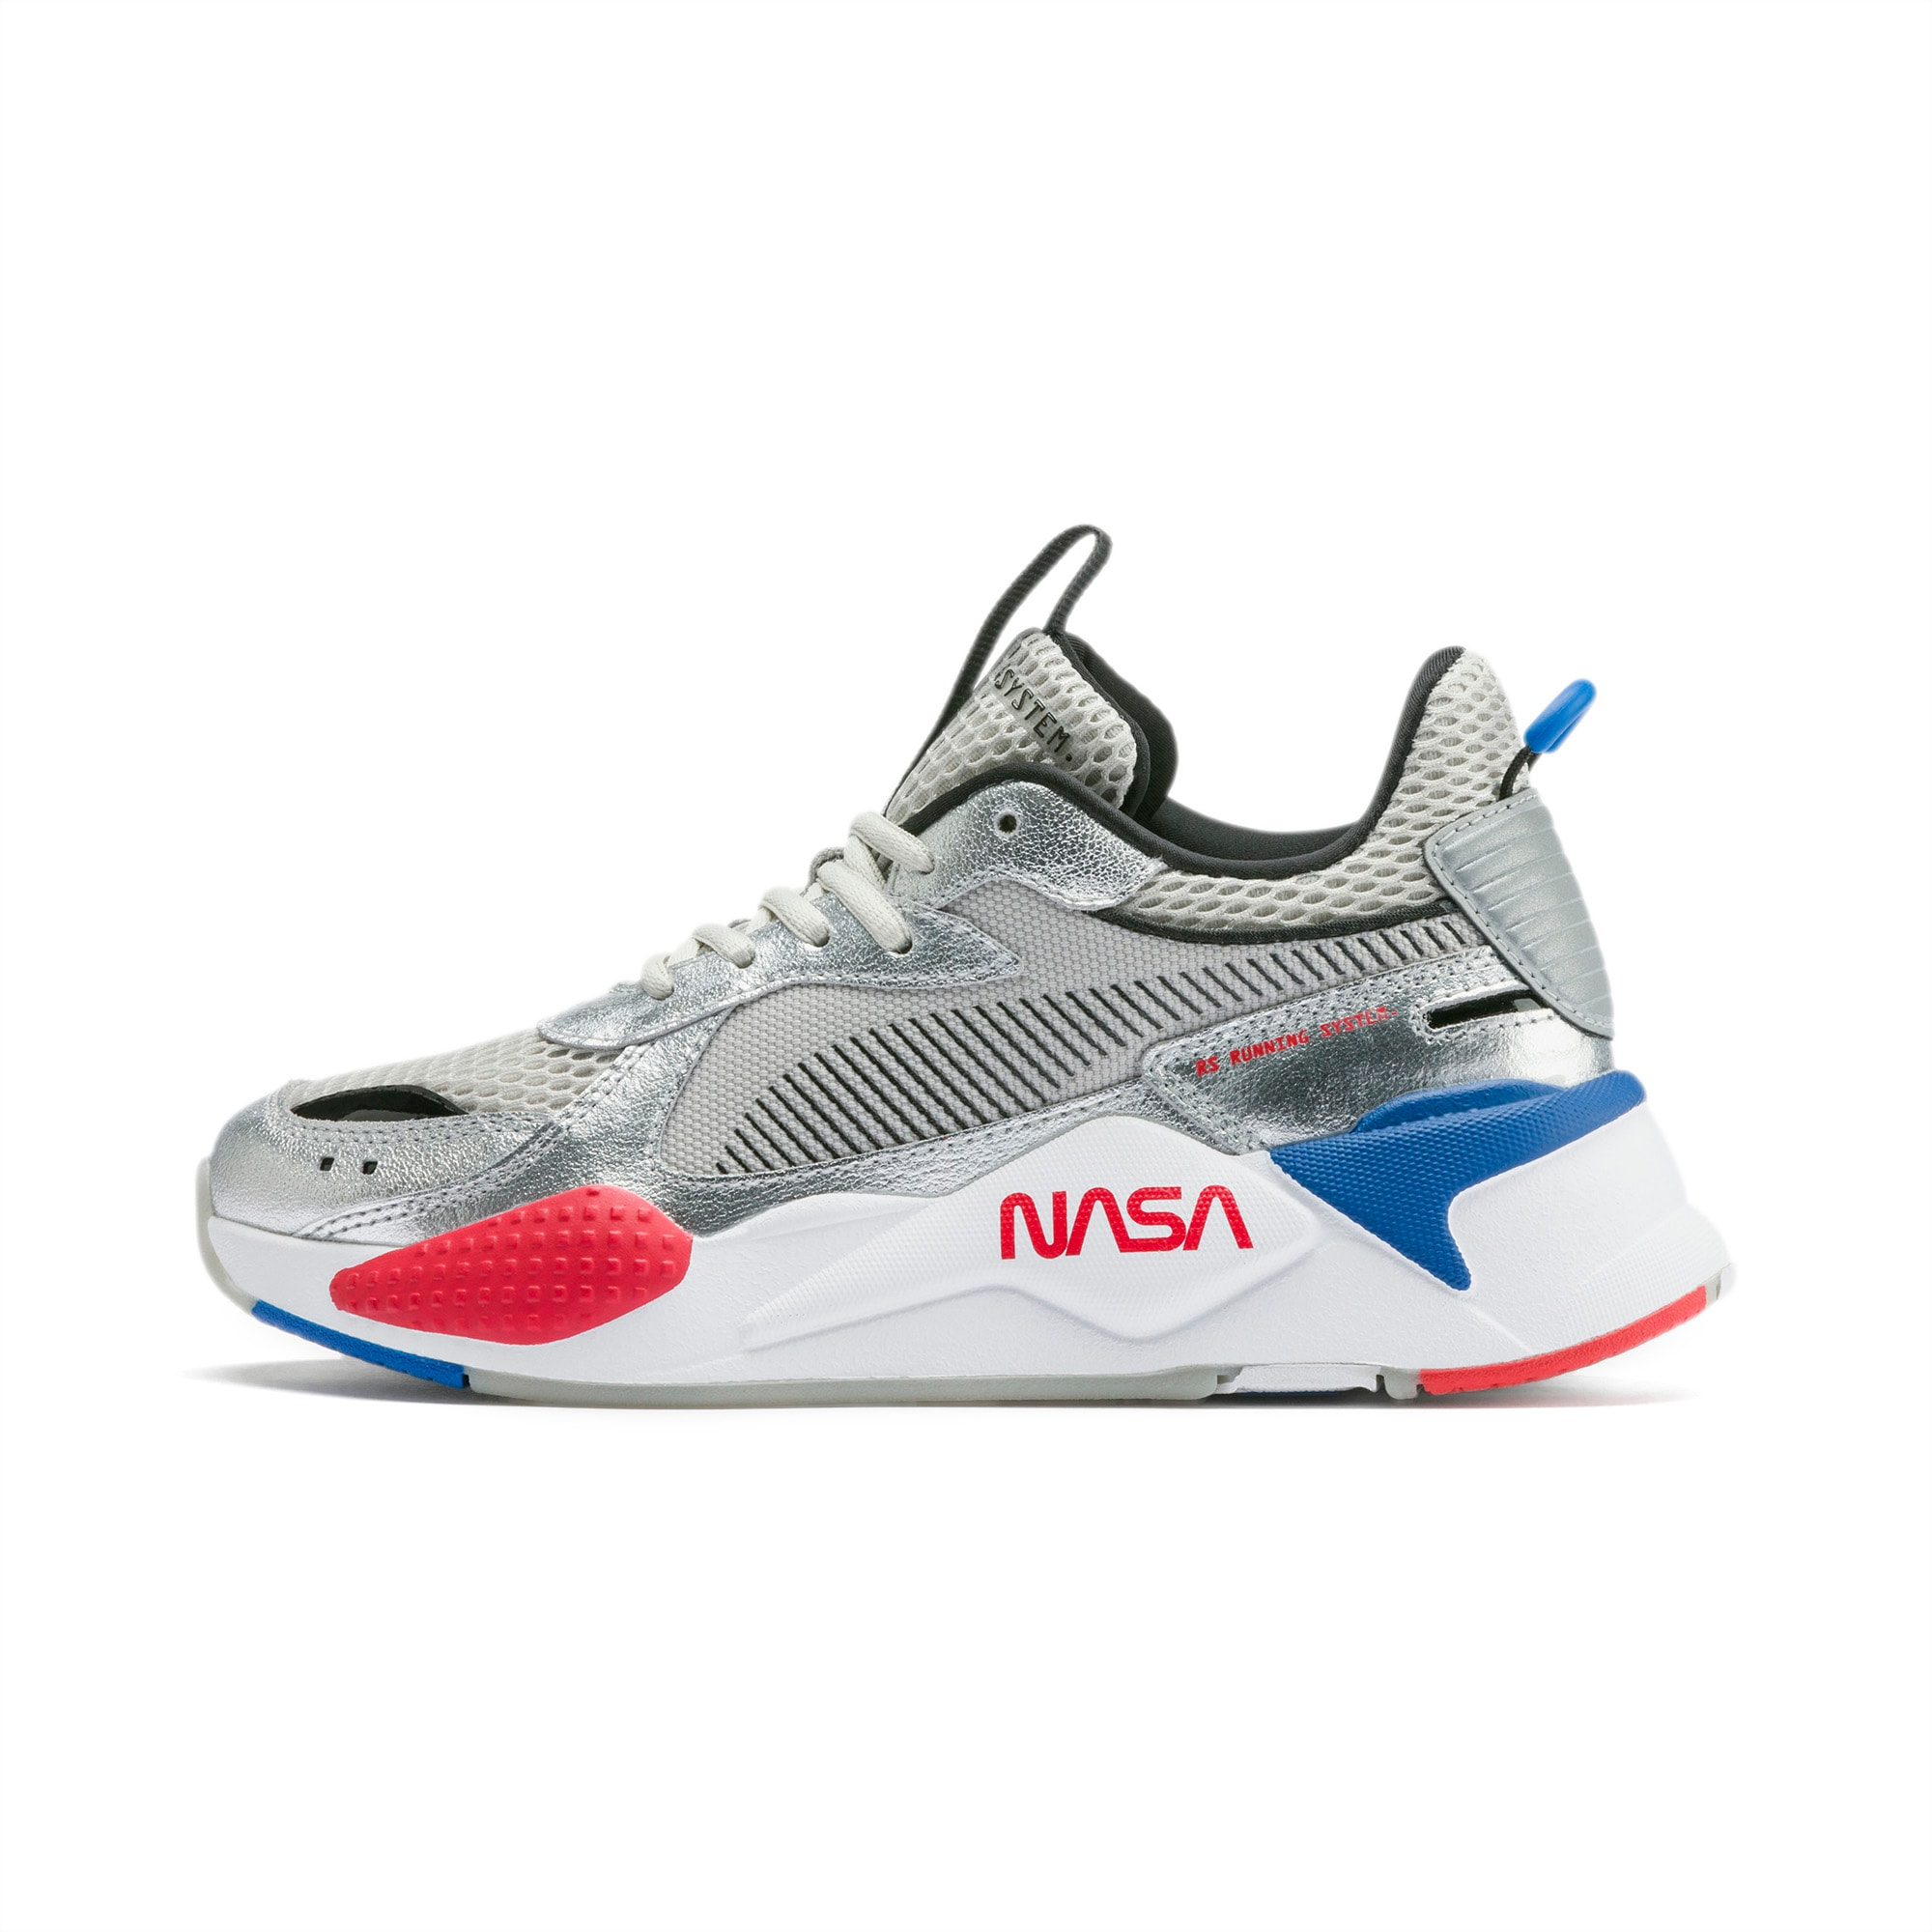 RS-X Space Explorer Youth Trainers, Puma Silver-Gray Violet, large-SEA